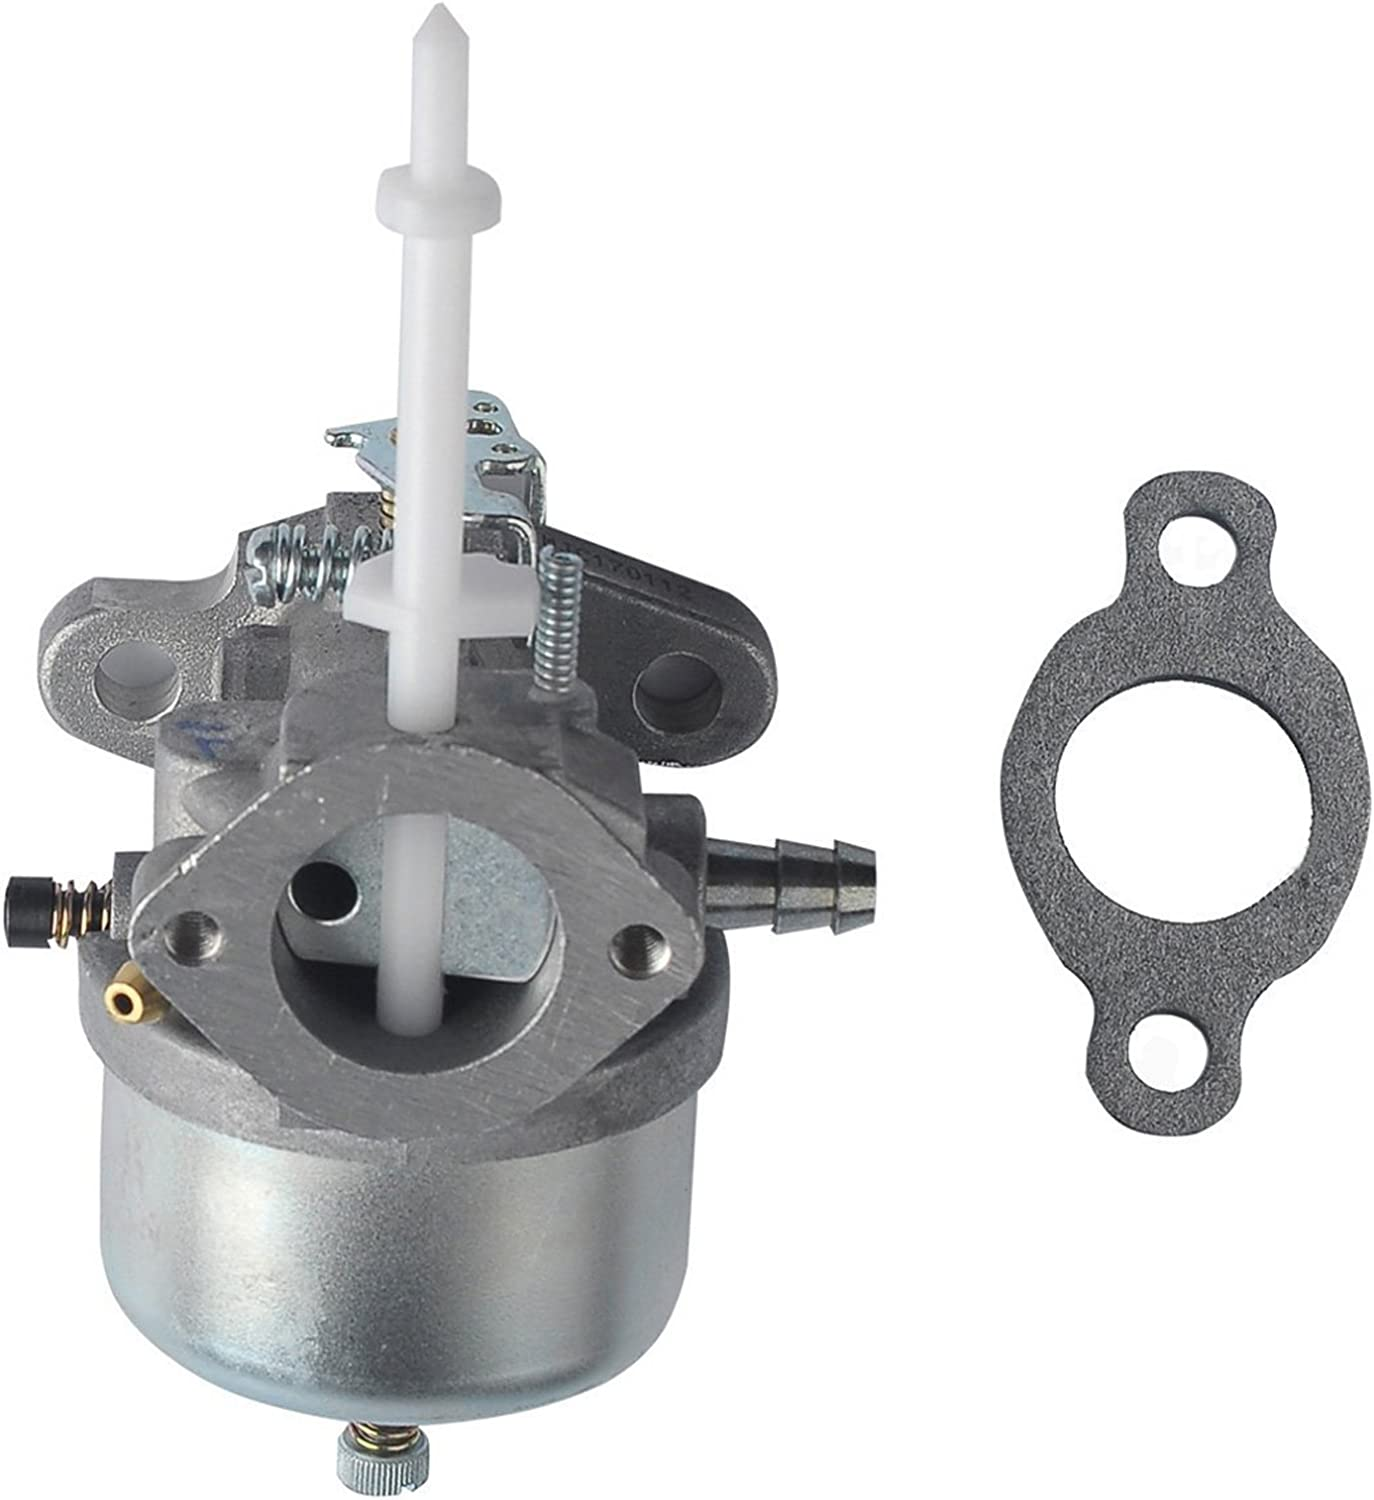 PROCOMPANY Fashionable Replacement Ranking TOP12 Carburetor Compatible Tecumseh 63237 with